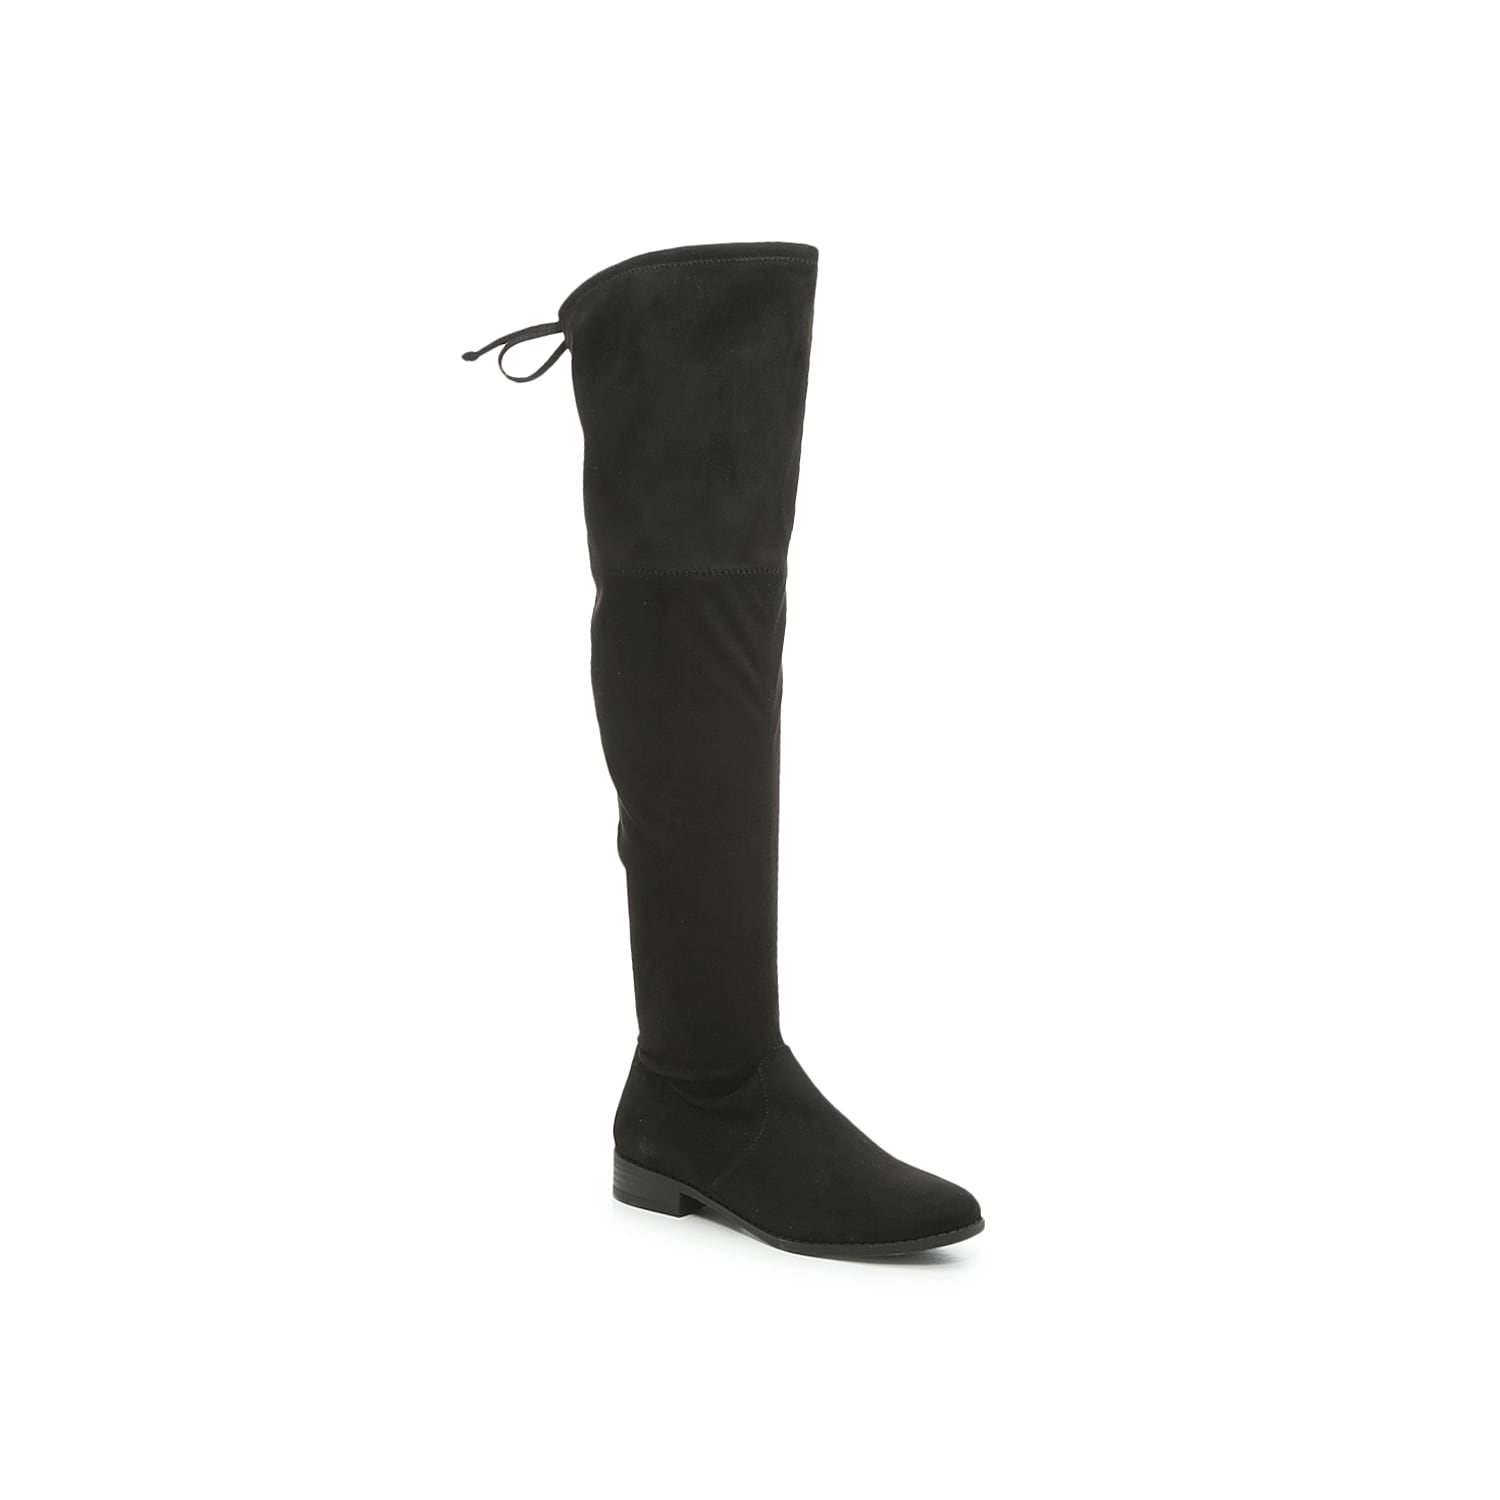 The Edi over the knee boot from Kelly & Katie is the epitome of classic style. This tall boot is versatile enough to pair with any of your cool weather looks!Click here for Boot Measuring Guide.